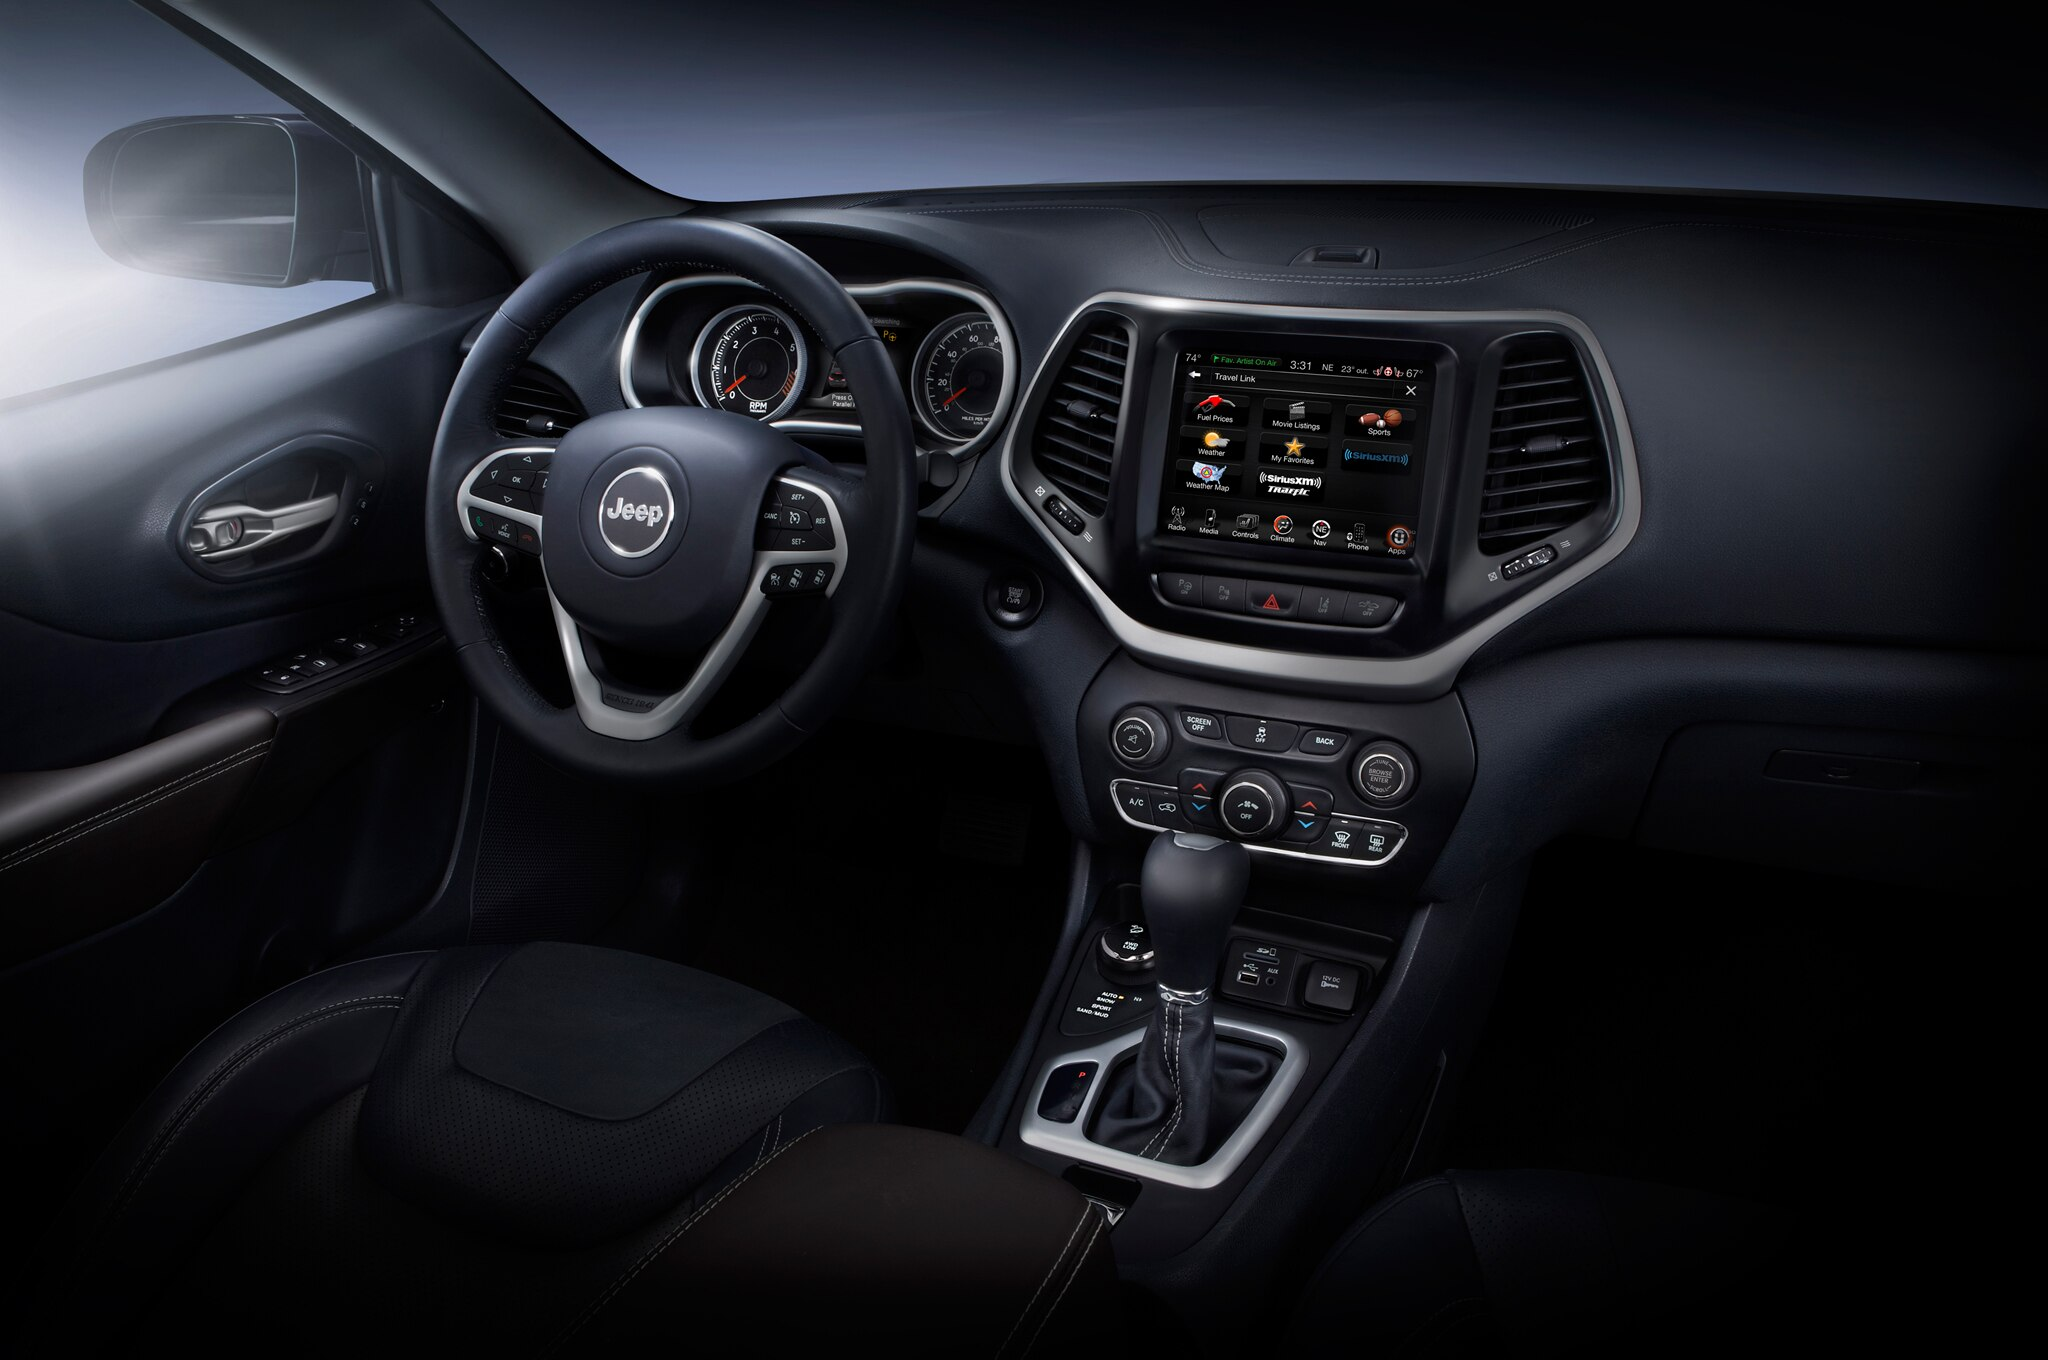 2014 Jeep Cherokee Limited interior